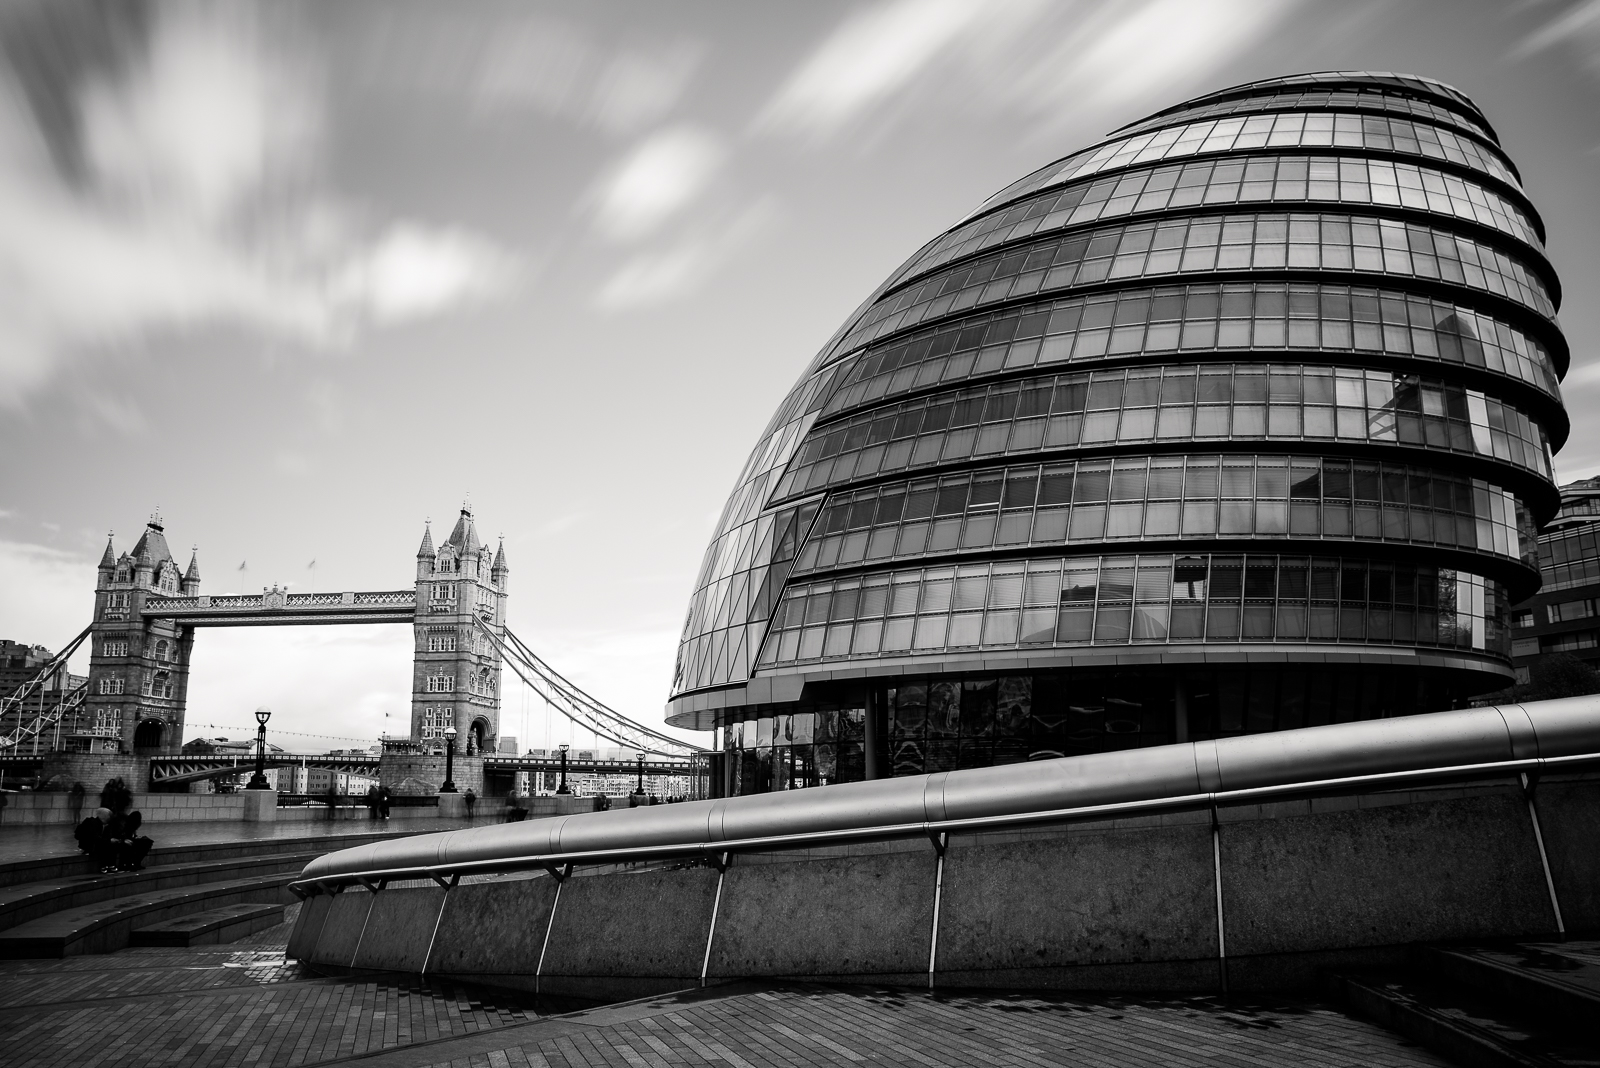 City Hall, London - United Kingdom